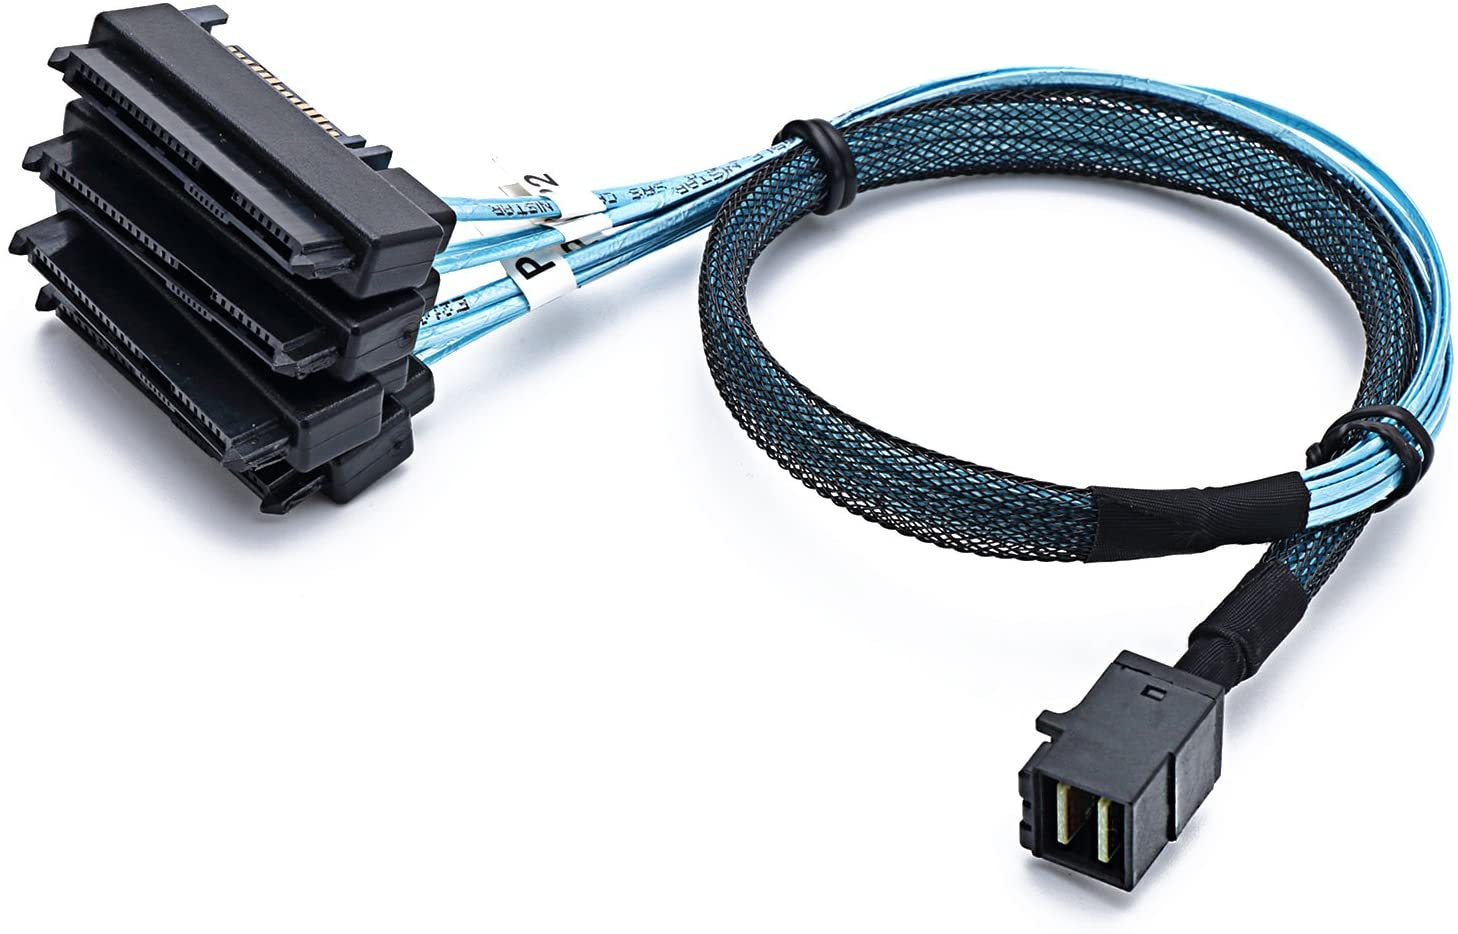 CableDeconn SFF-8643 Internal Mini SAS HD to (4) 29pin SFF-8482 connectors with SAS 15pin Power Port 12GB/S Cable (1M) (H0204)